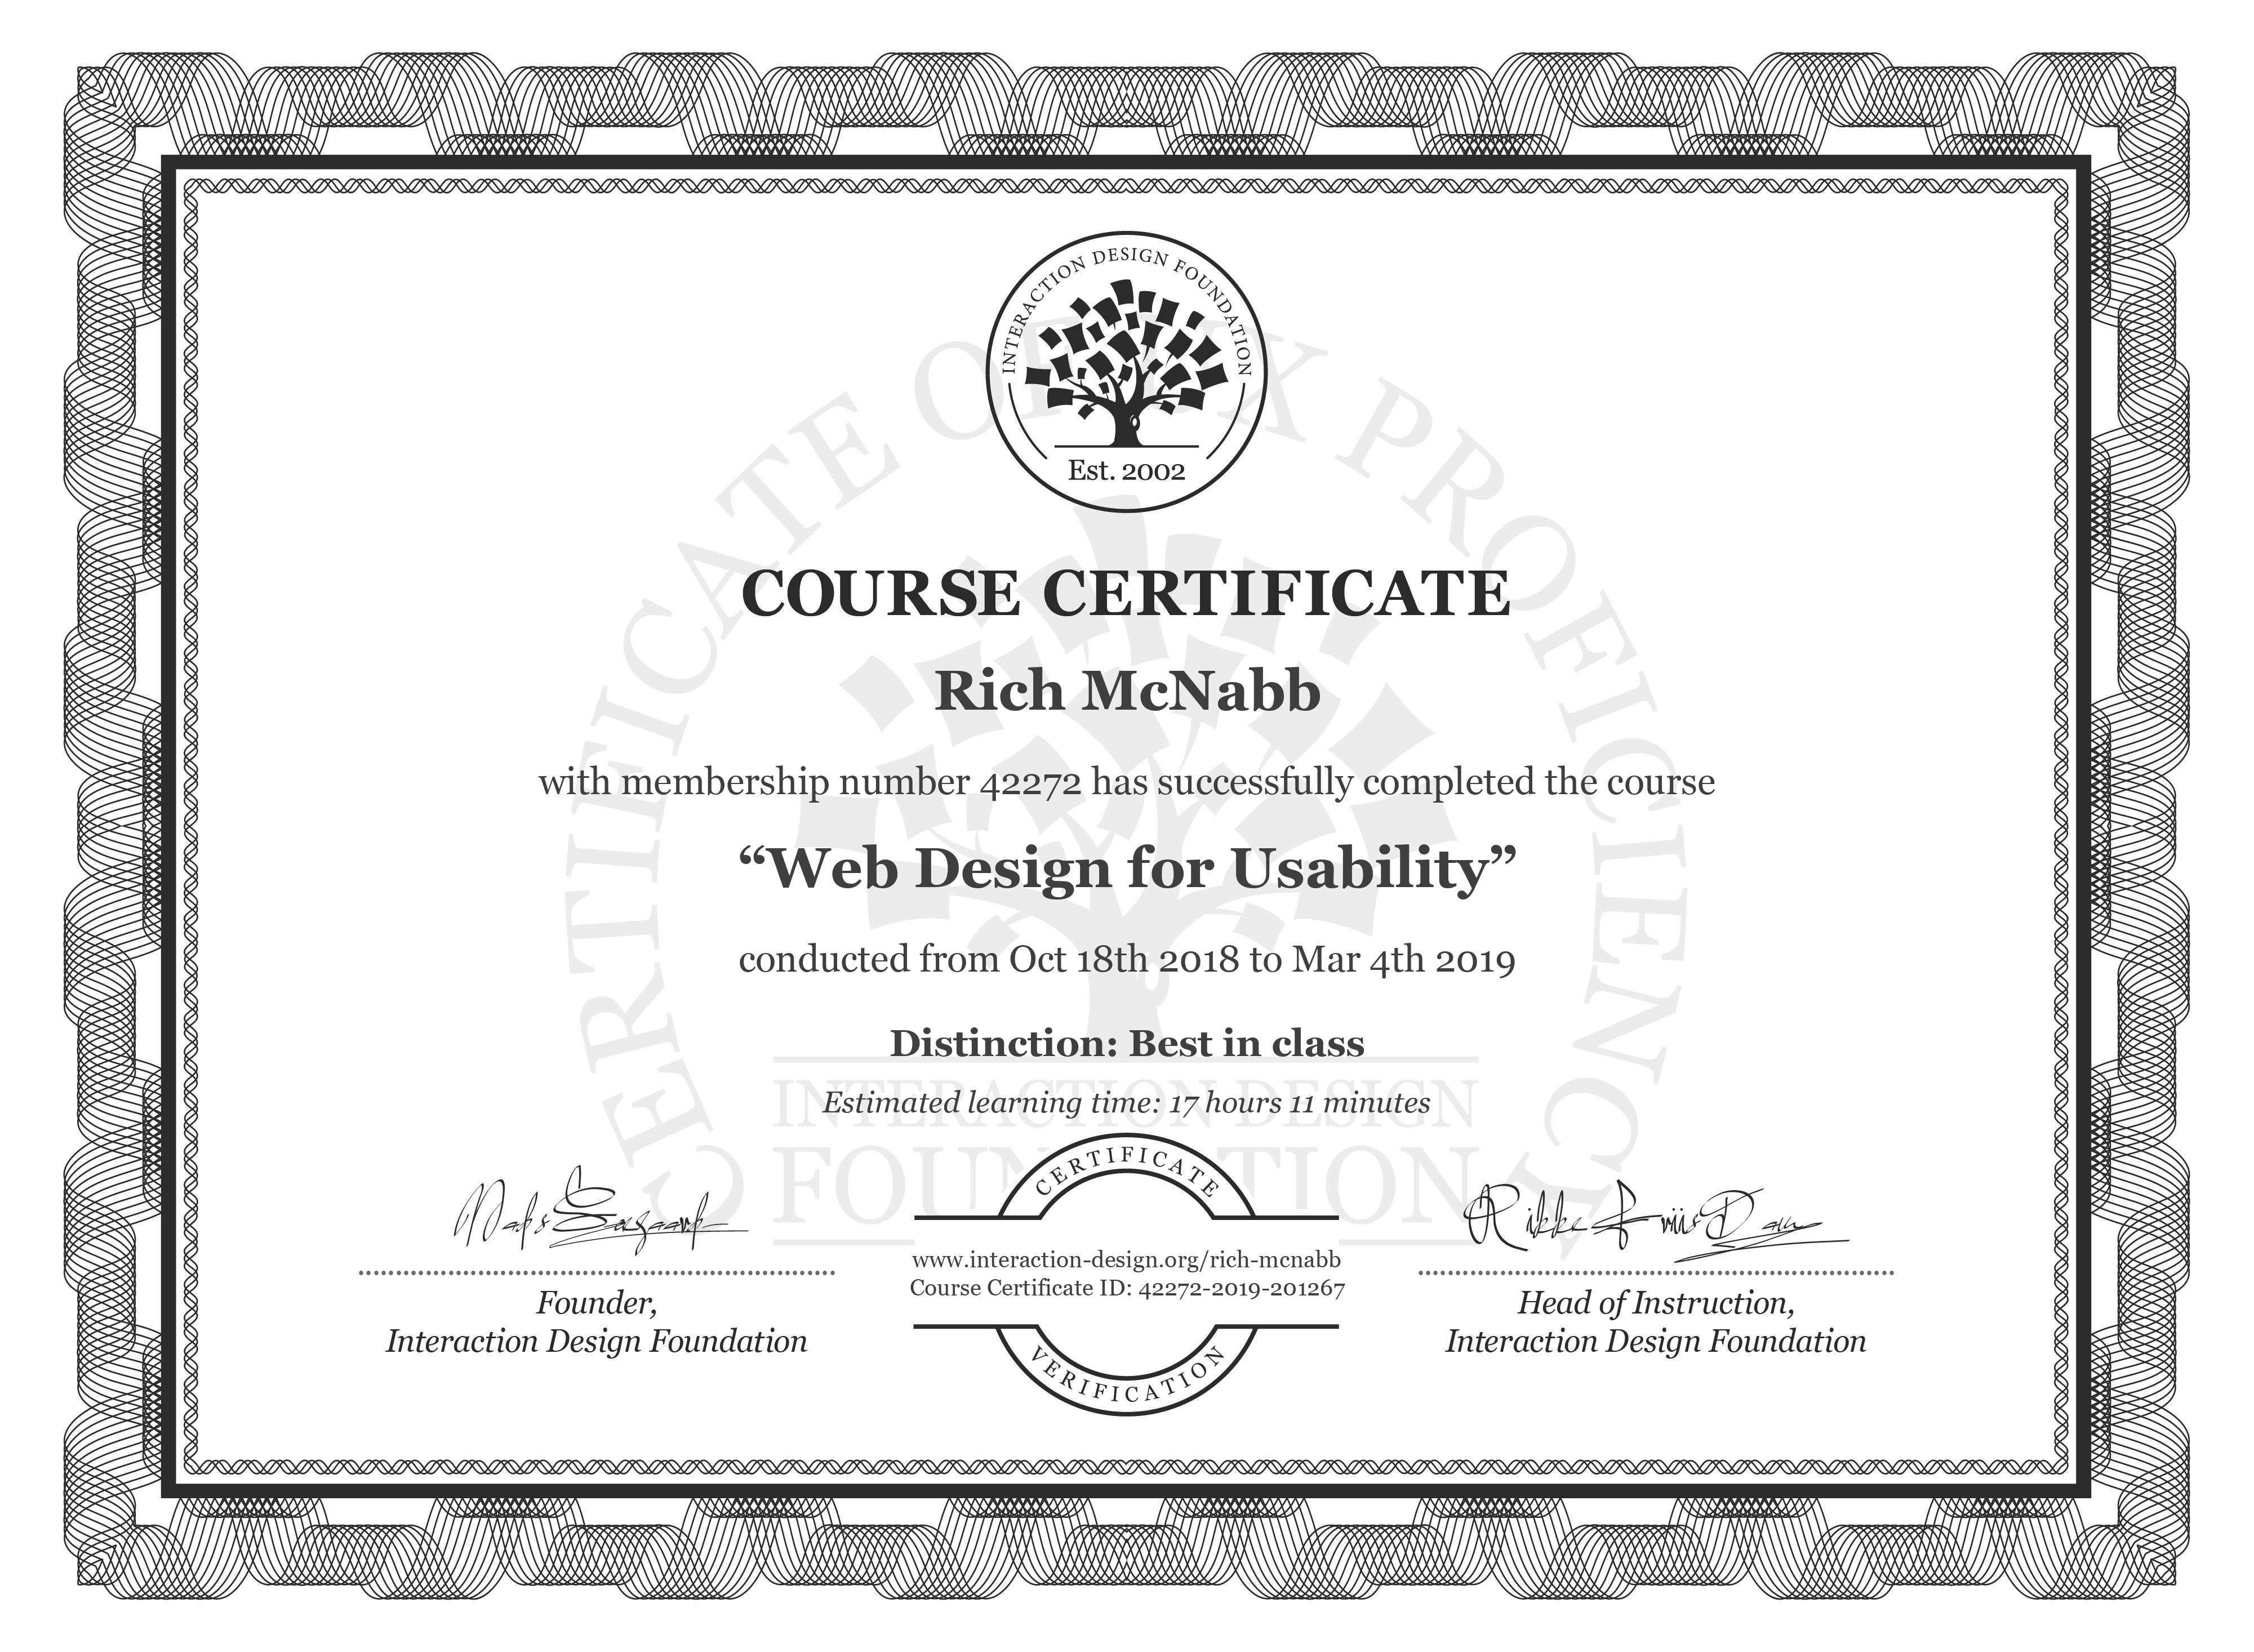 Rich McNabb's Course Certificate: Web Design for Usability